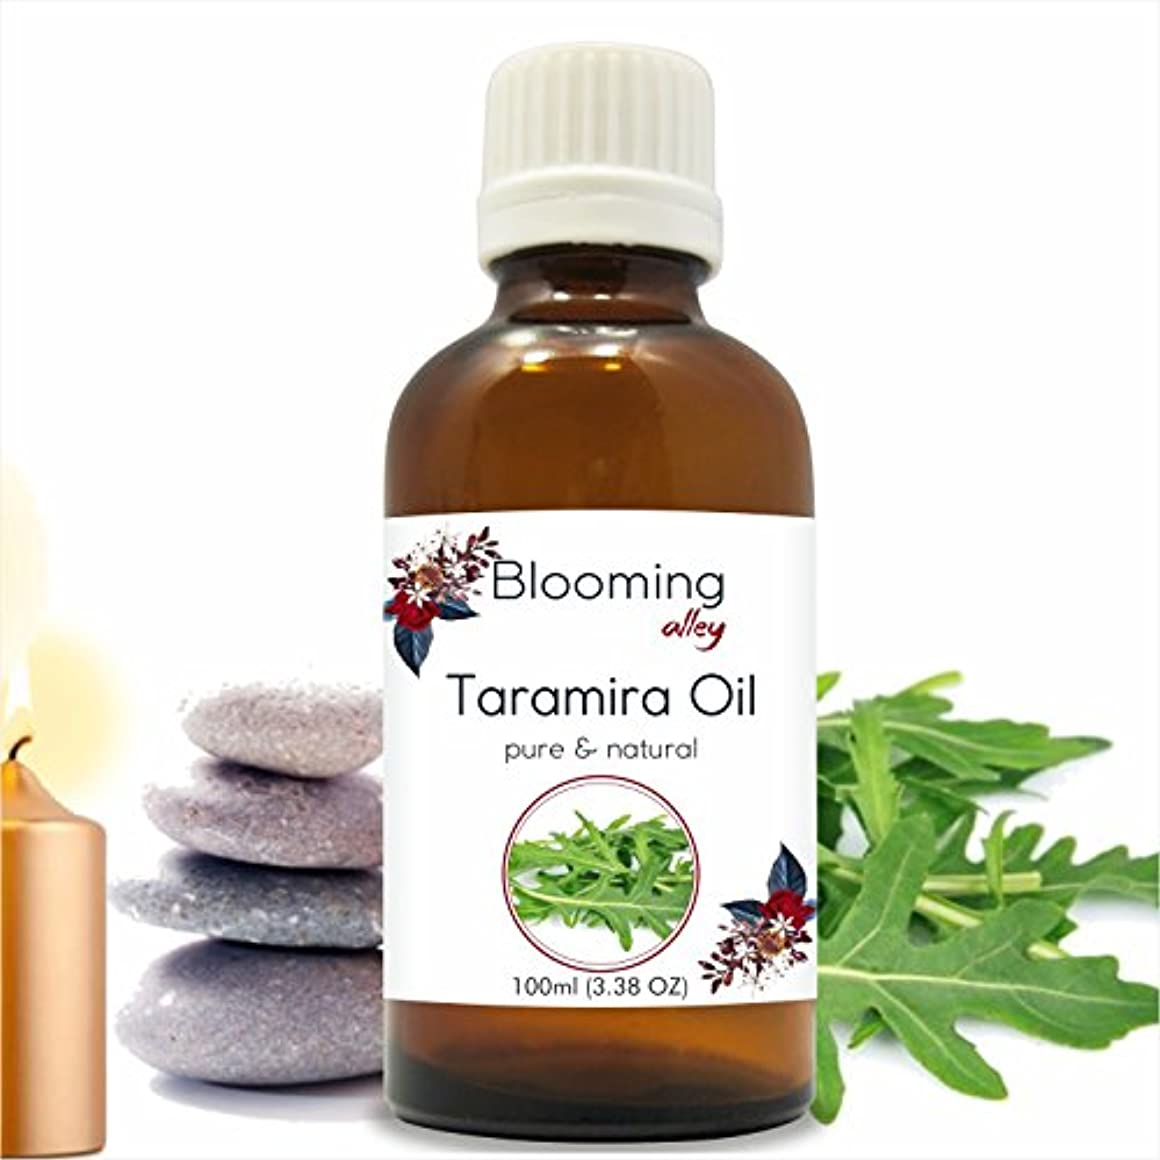 休眠ディーラー観光に行くTaramira Oil(Eruca Sativa) Essential Oil 100 ml or 3.38 Fl Oz by Blooming Alley